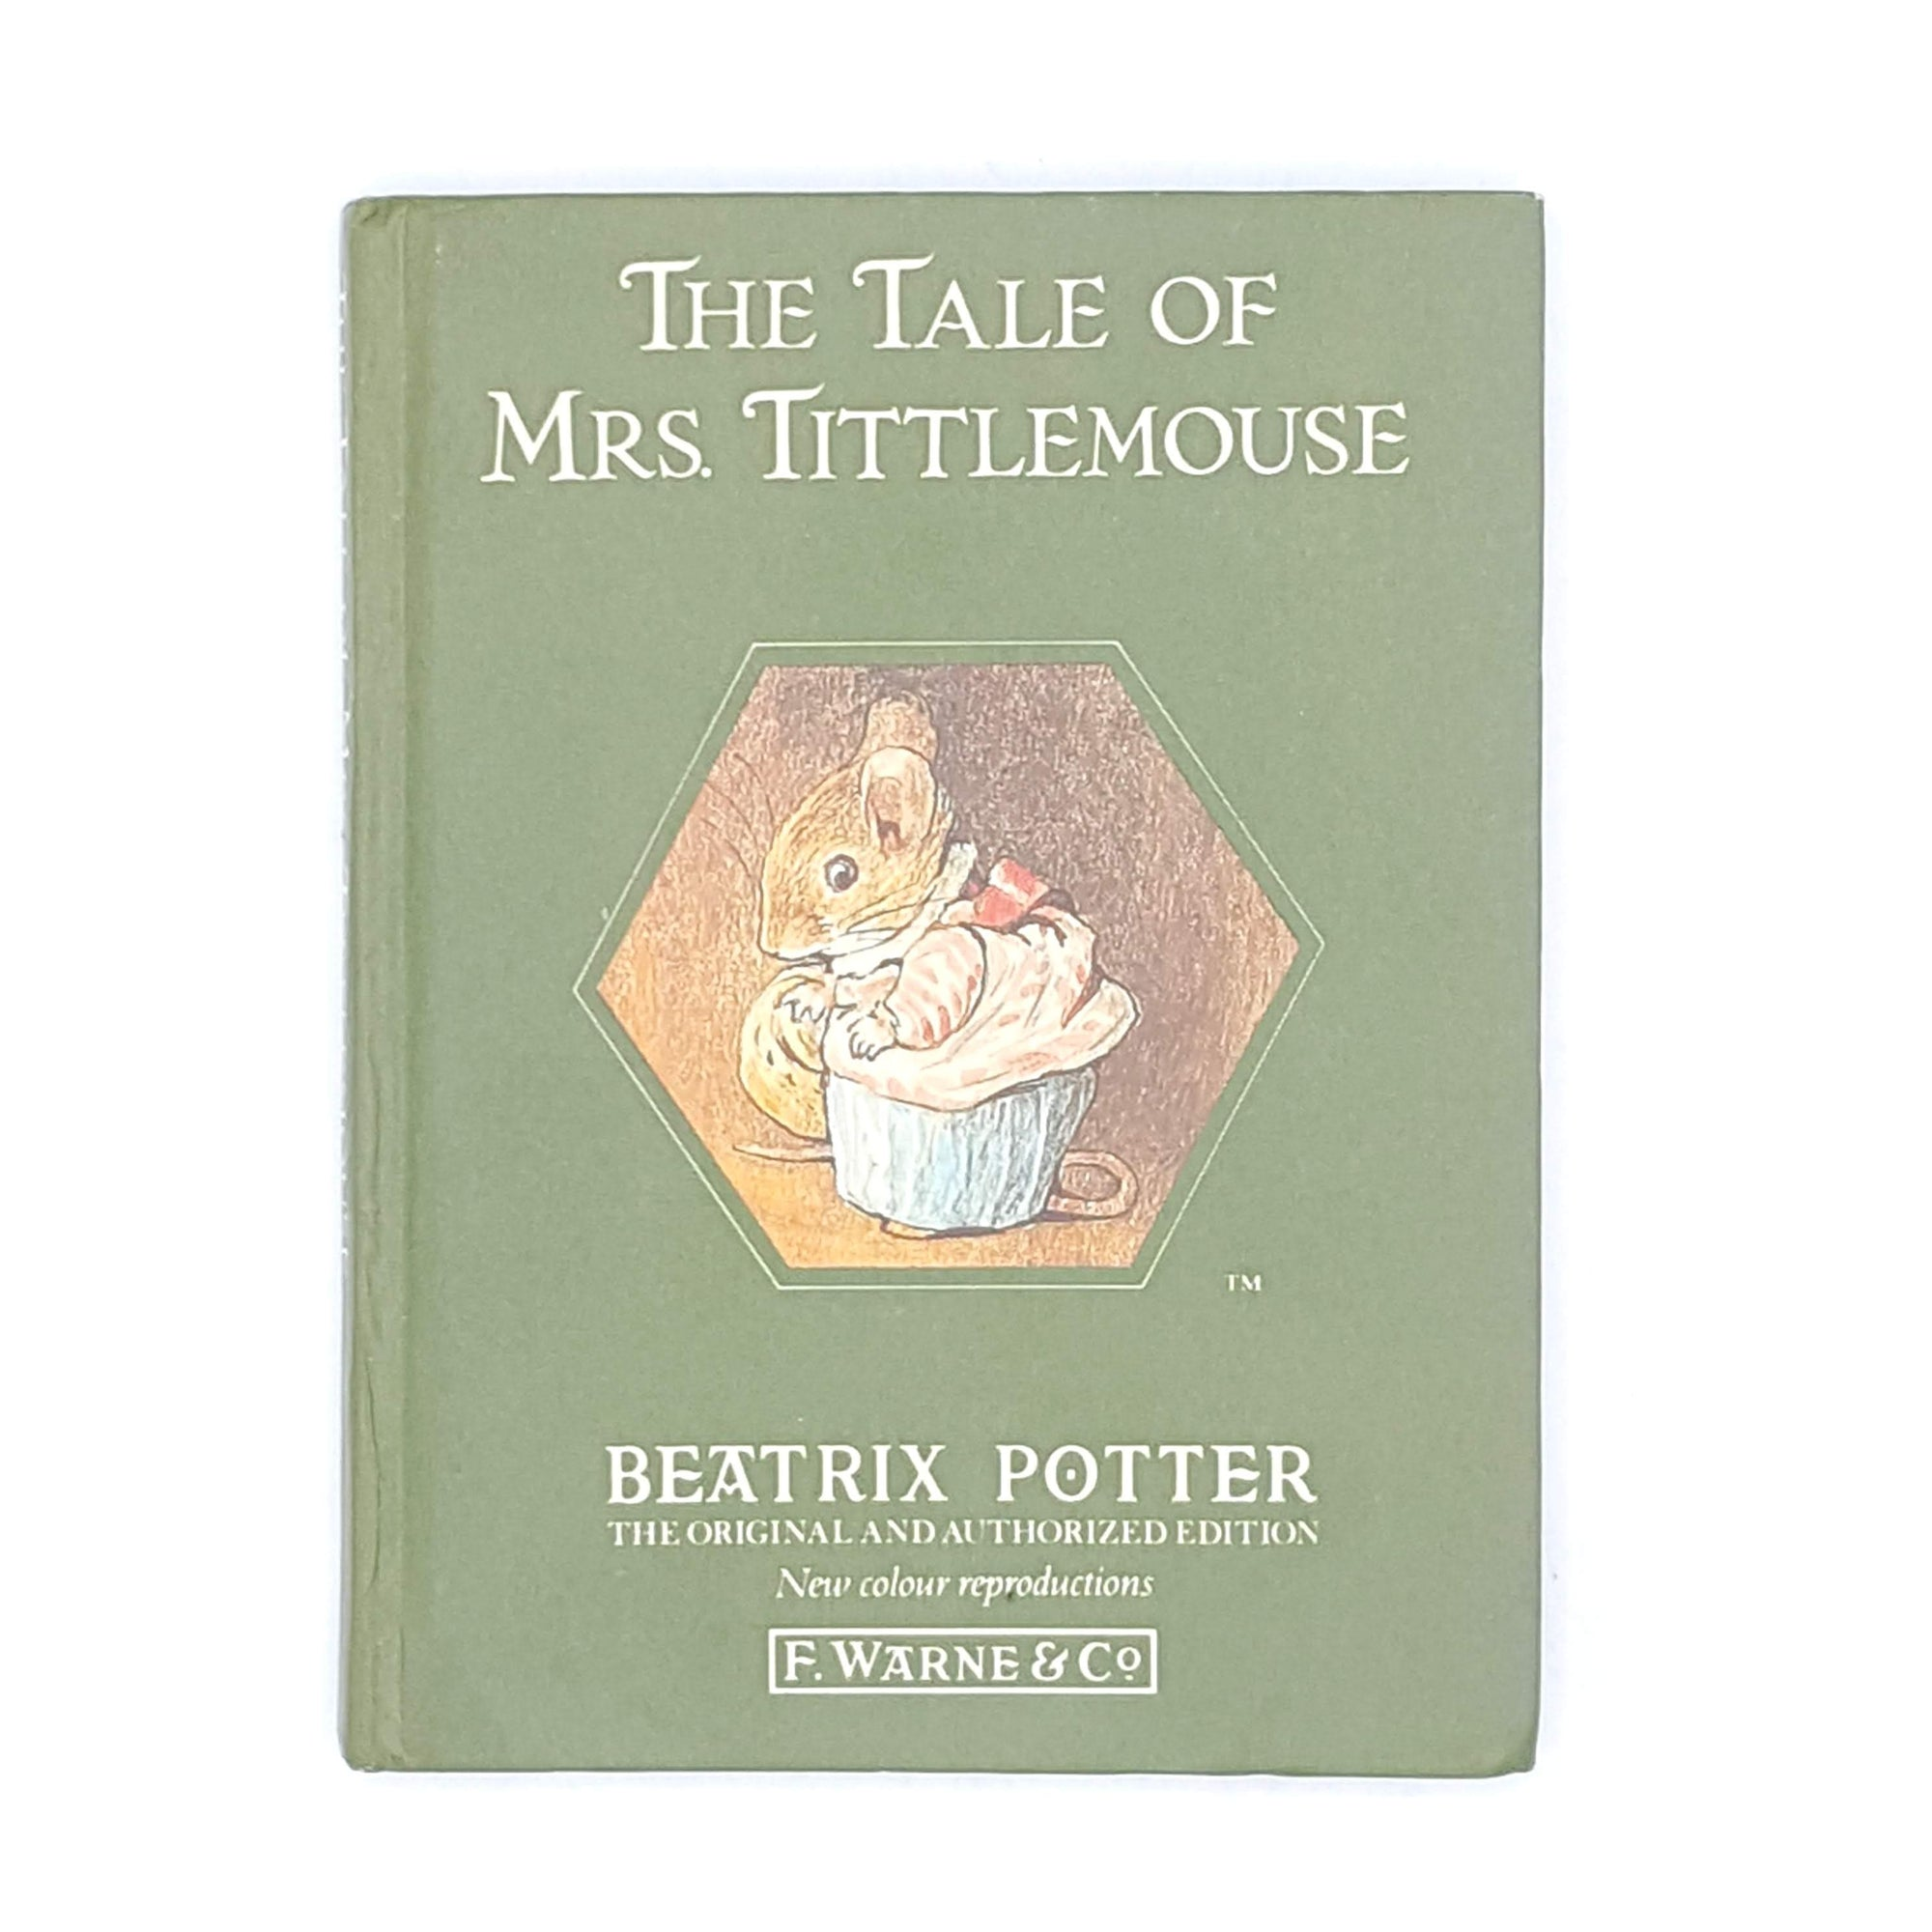 Beatrix Potter's The Tale of Mrs. Tittlemouse, green cover